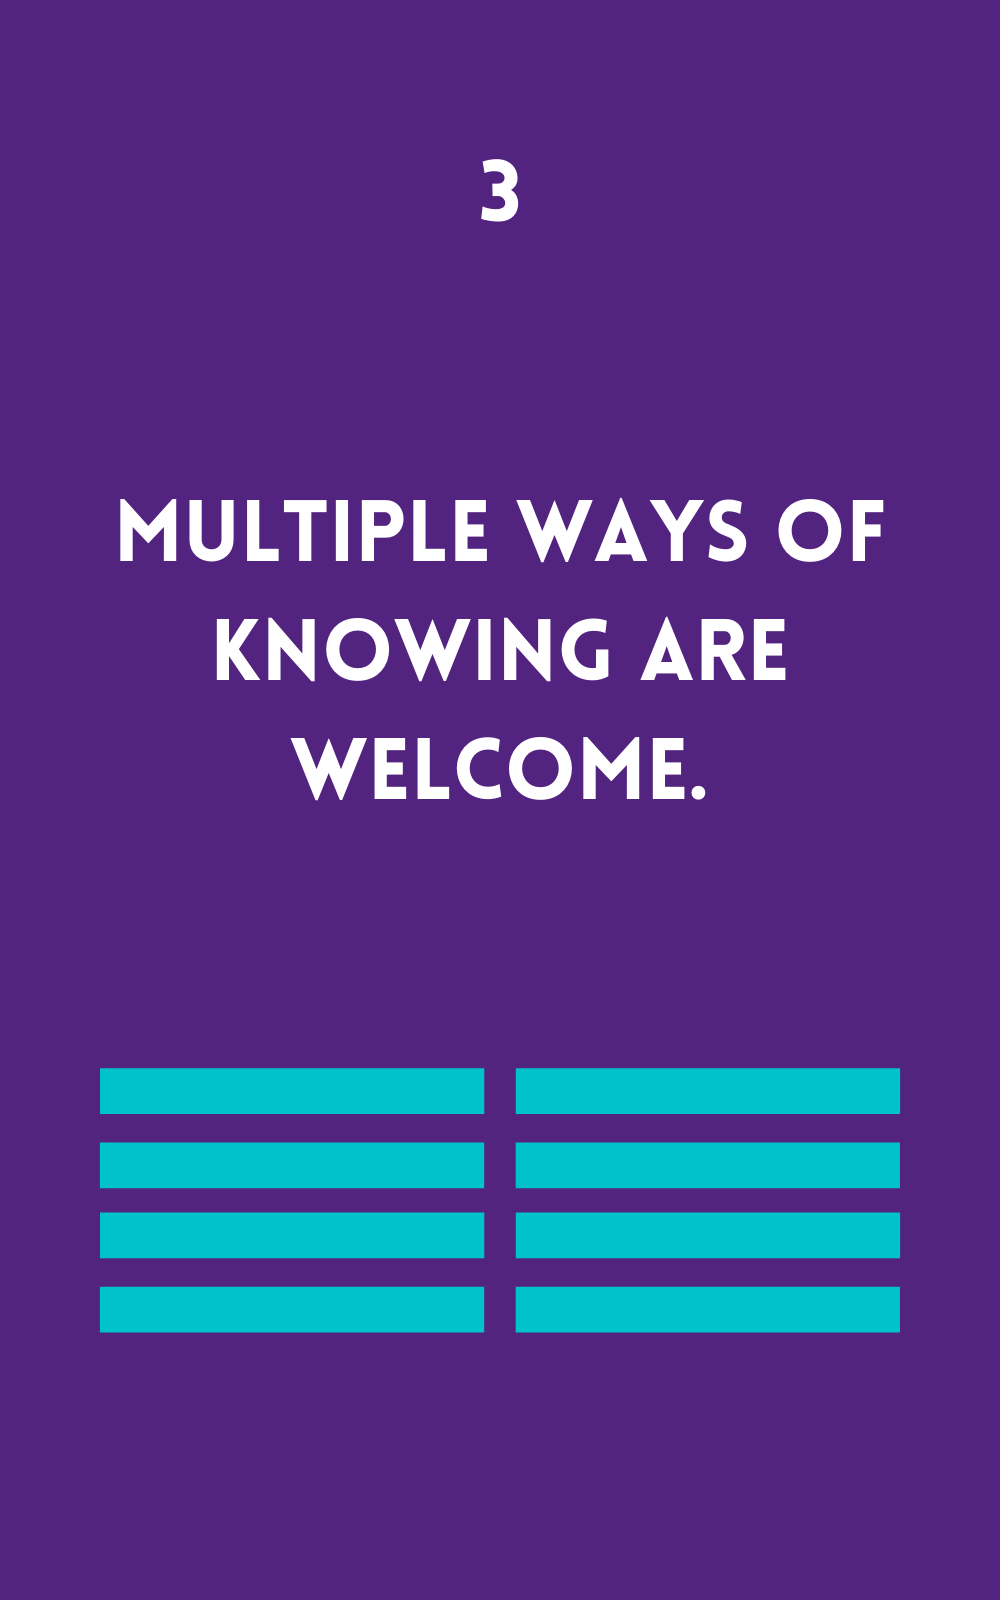 Multiple ways of knowing are welcome